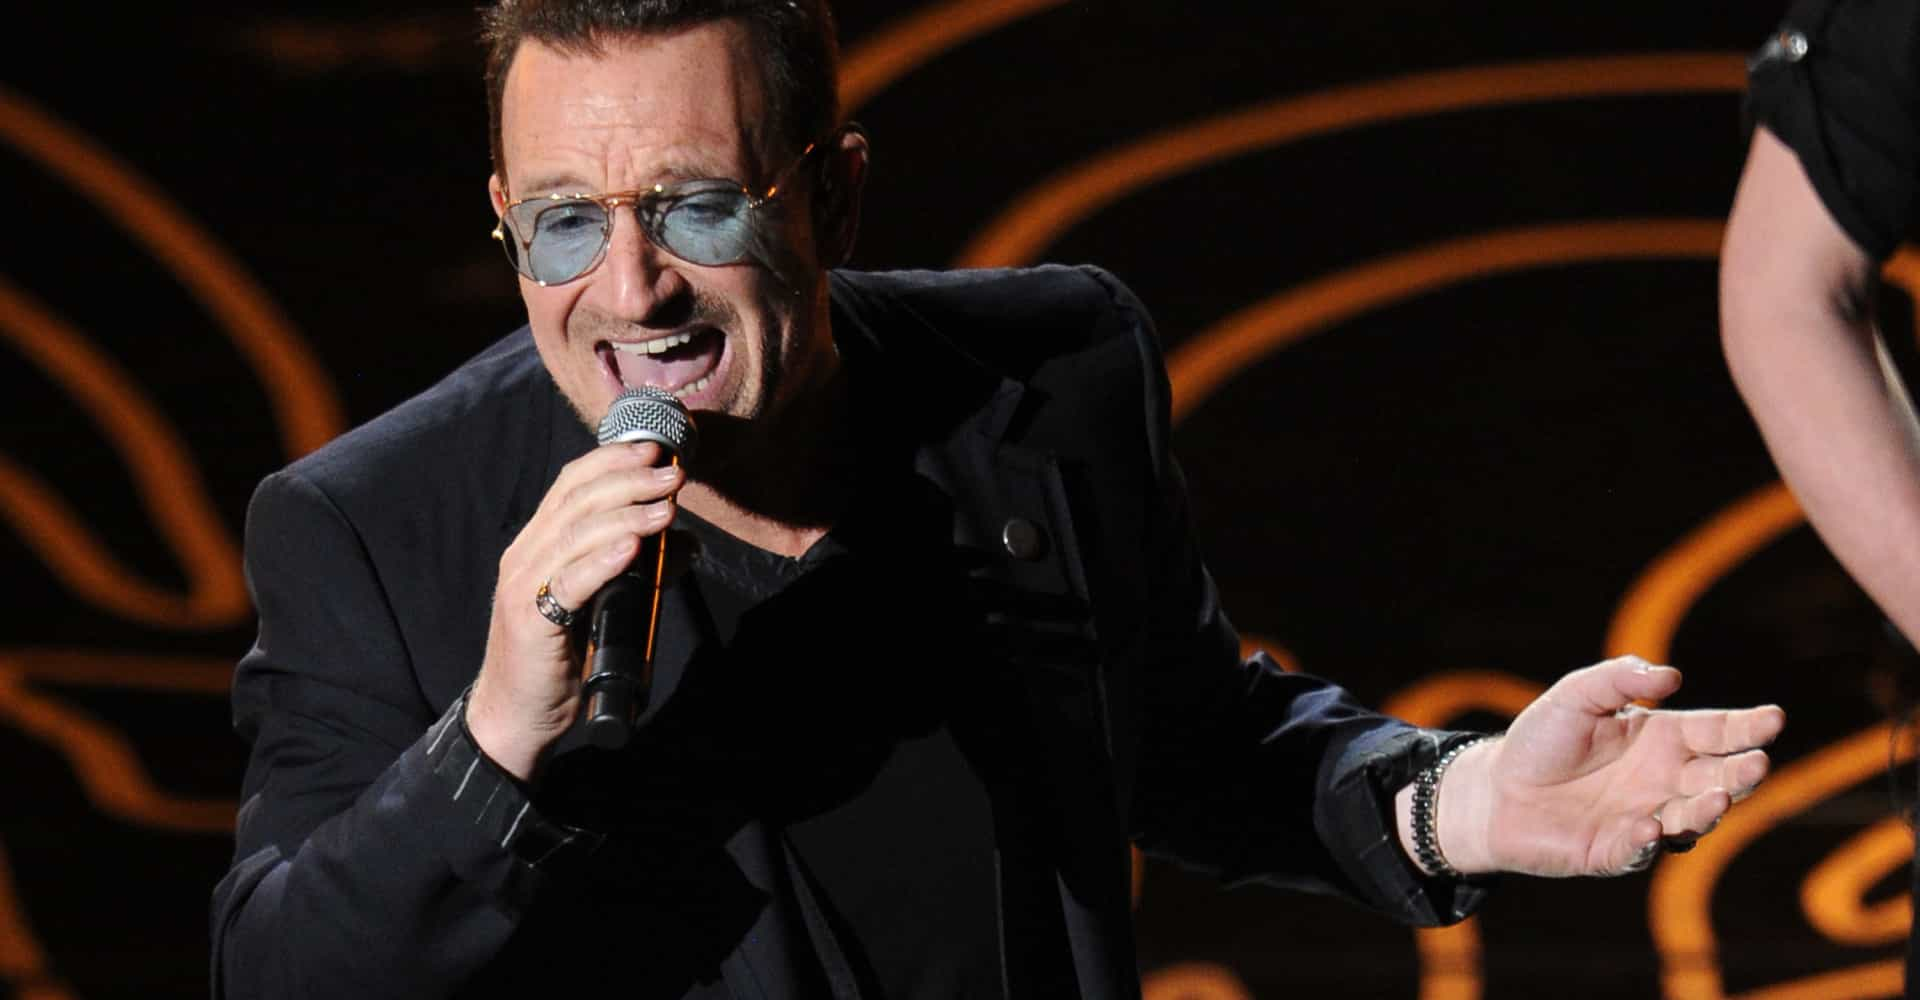 Bono from U2 completely loses his voice while on stage in Berlin